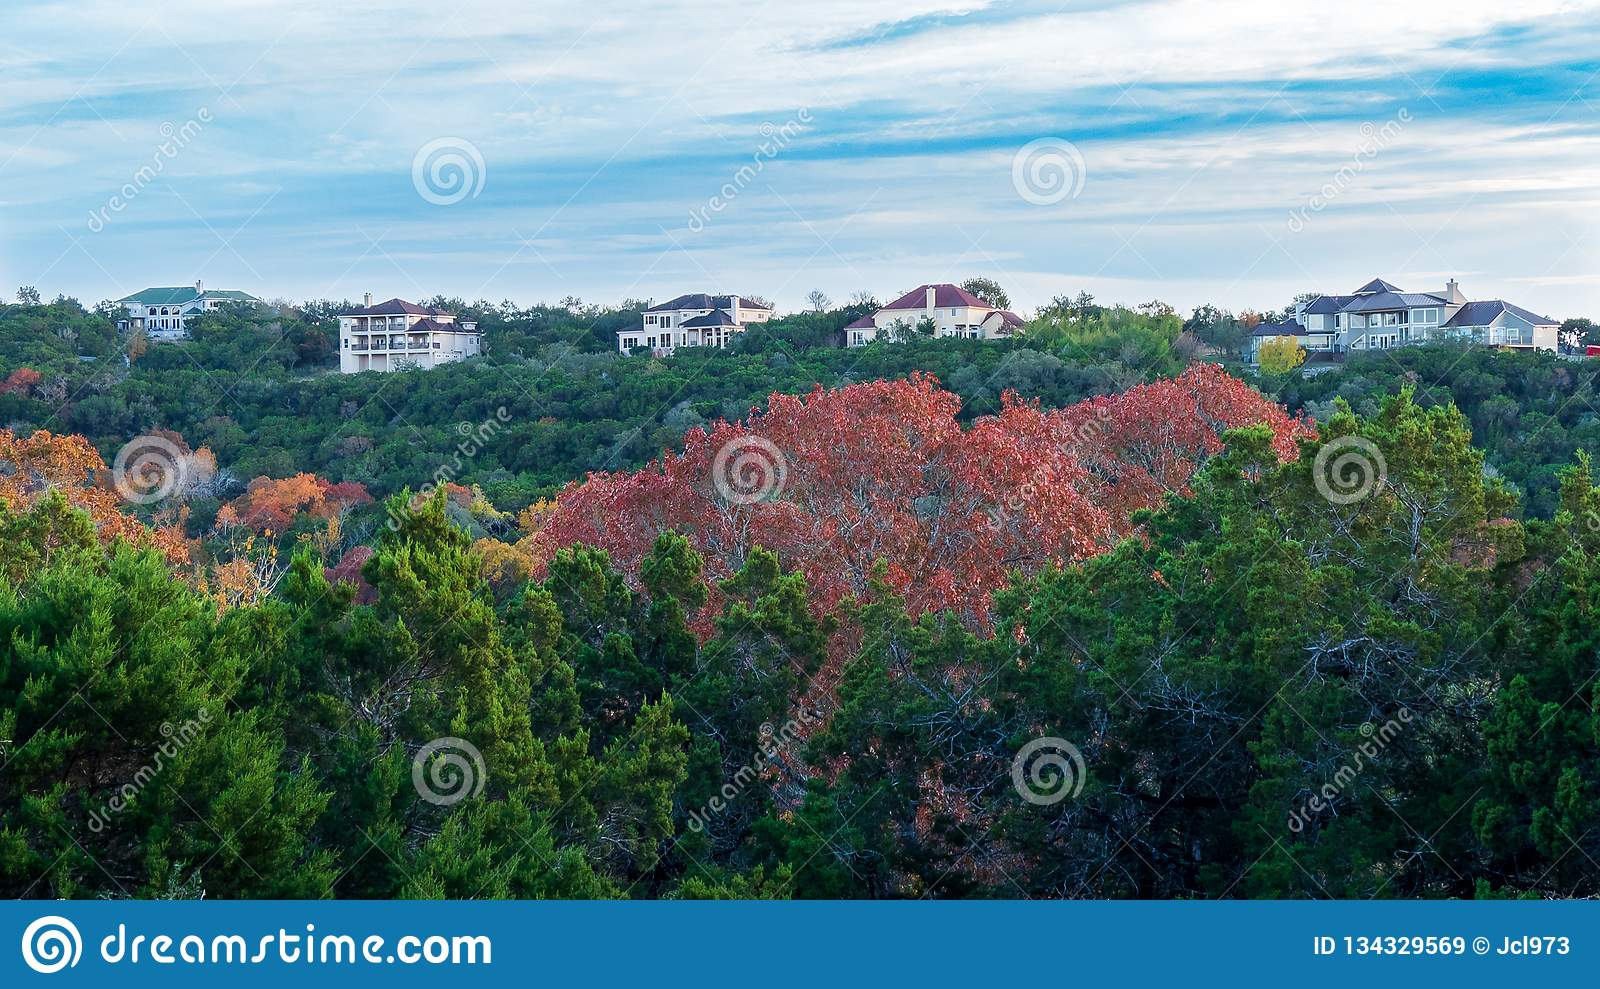 Homes on top of forest hill with fall colored trees